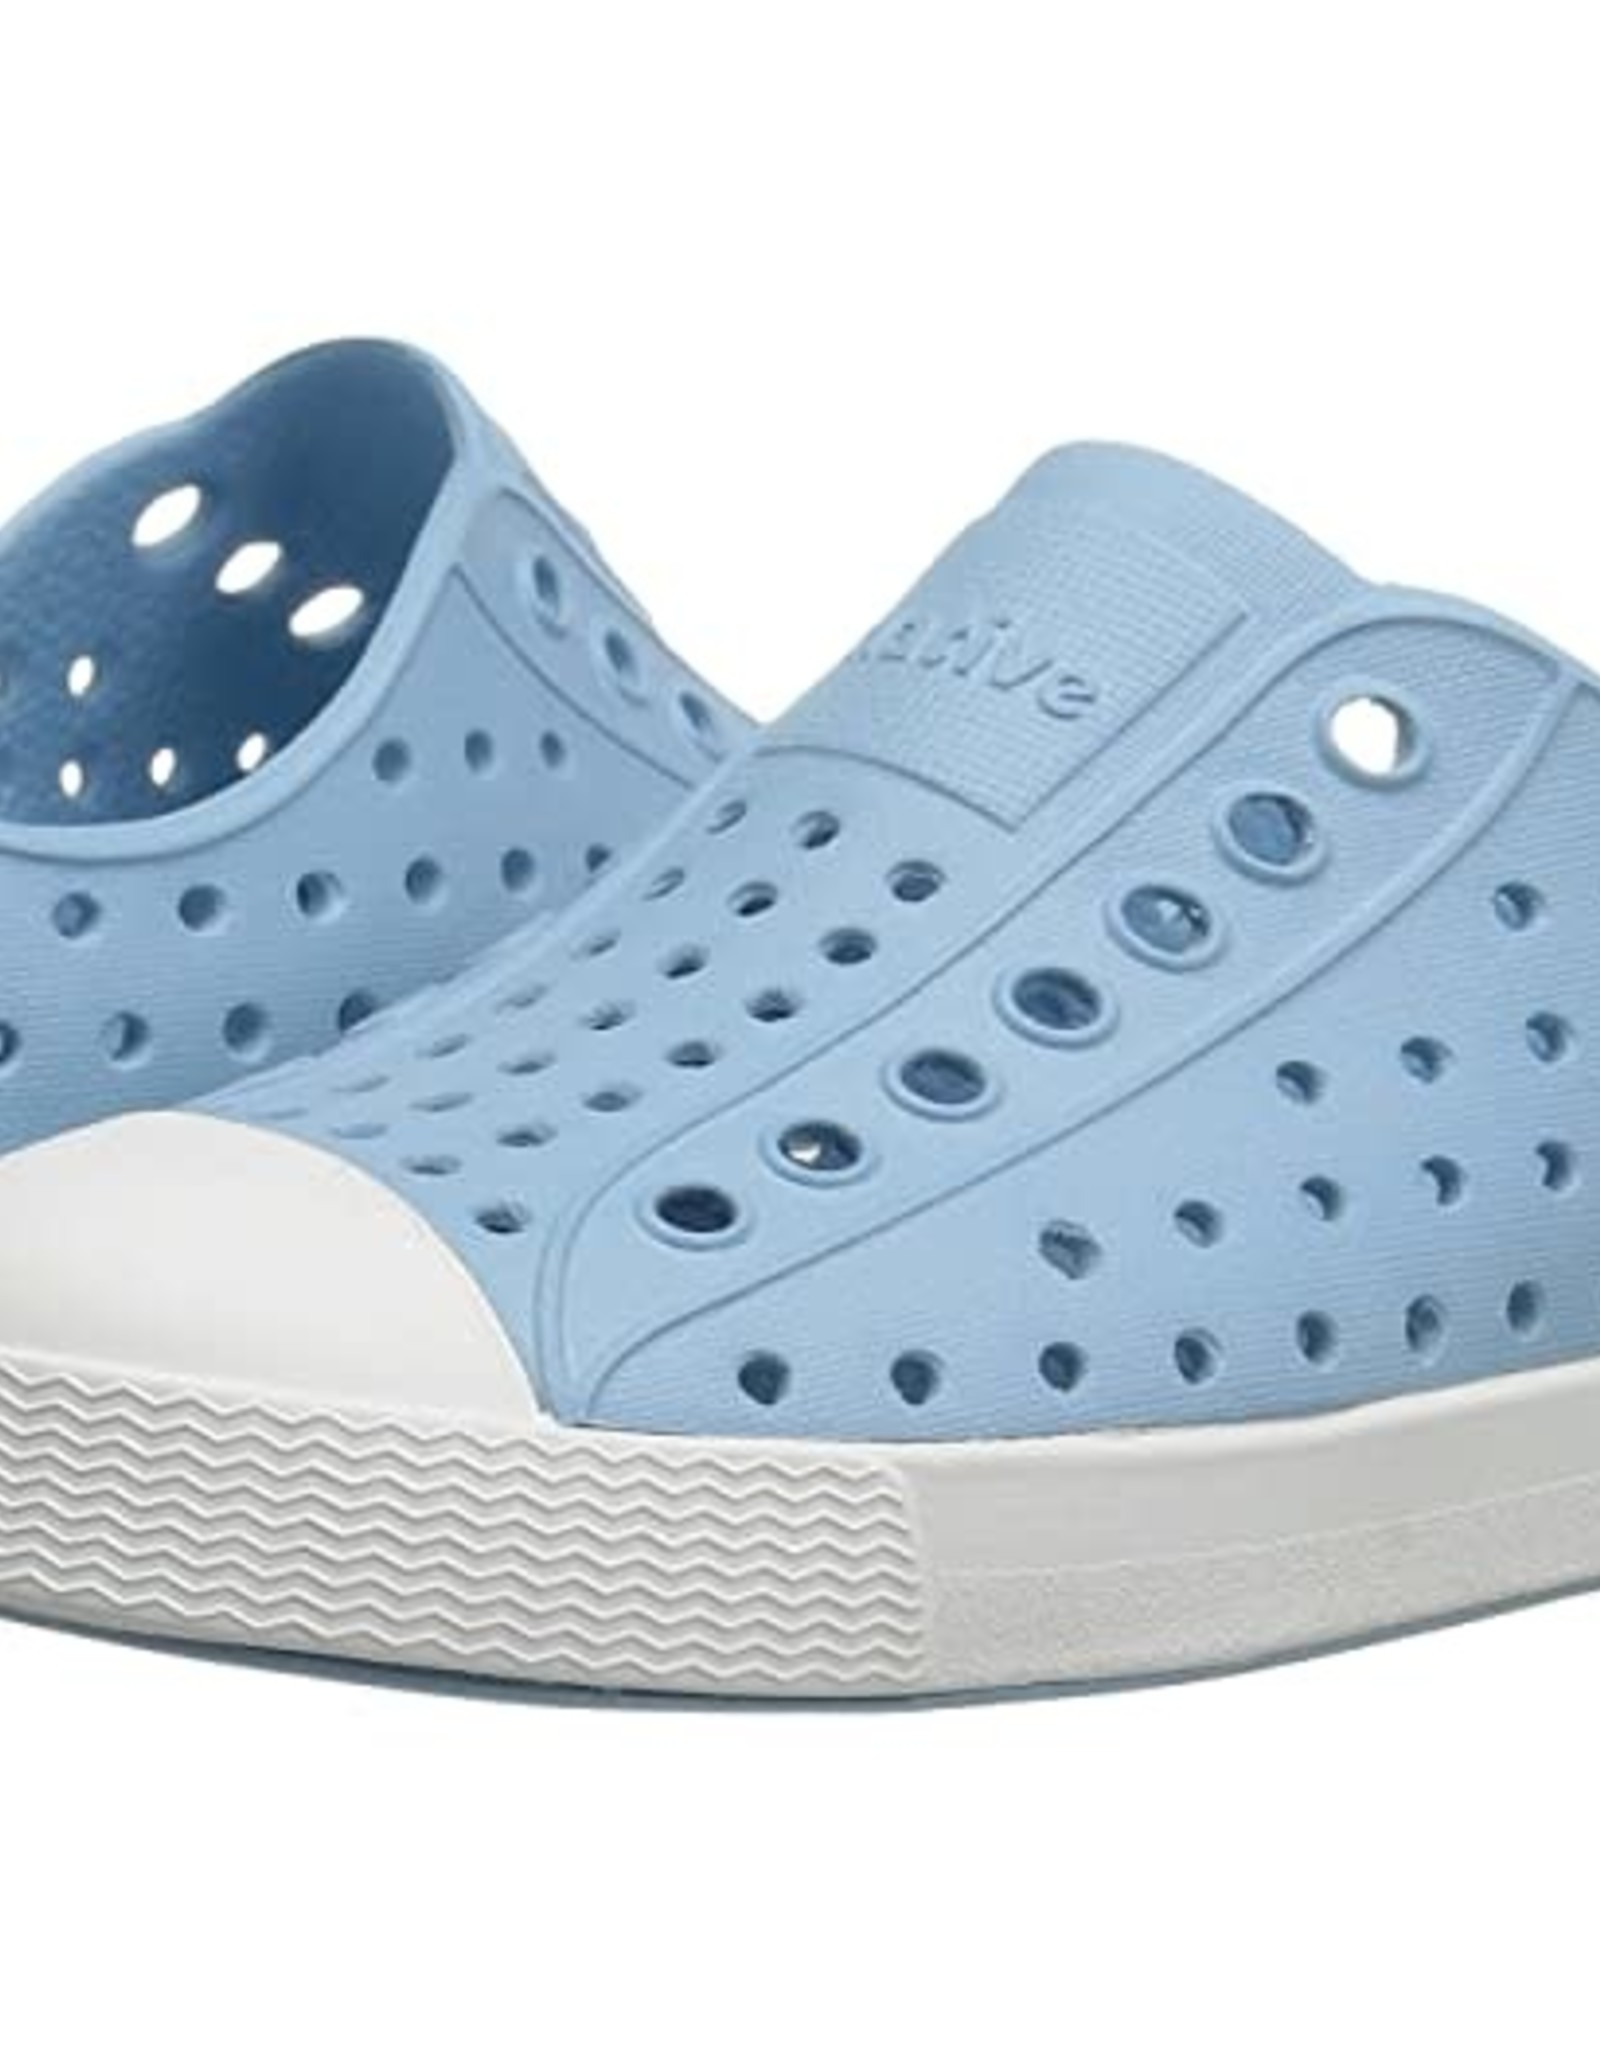 Native Shoes Jefferson in Sky Blue/Shell White